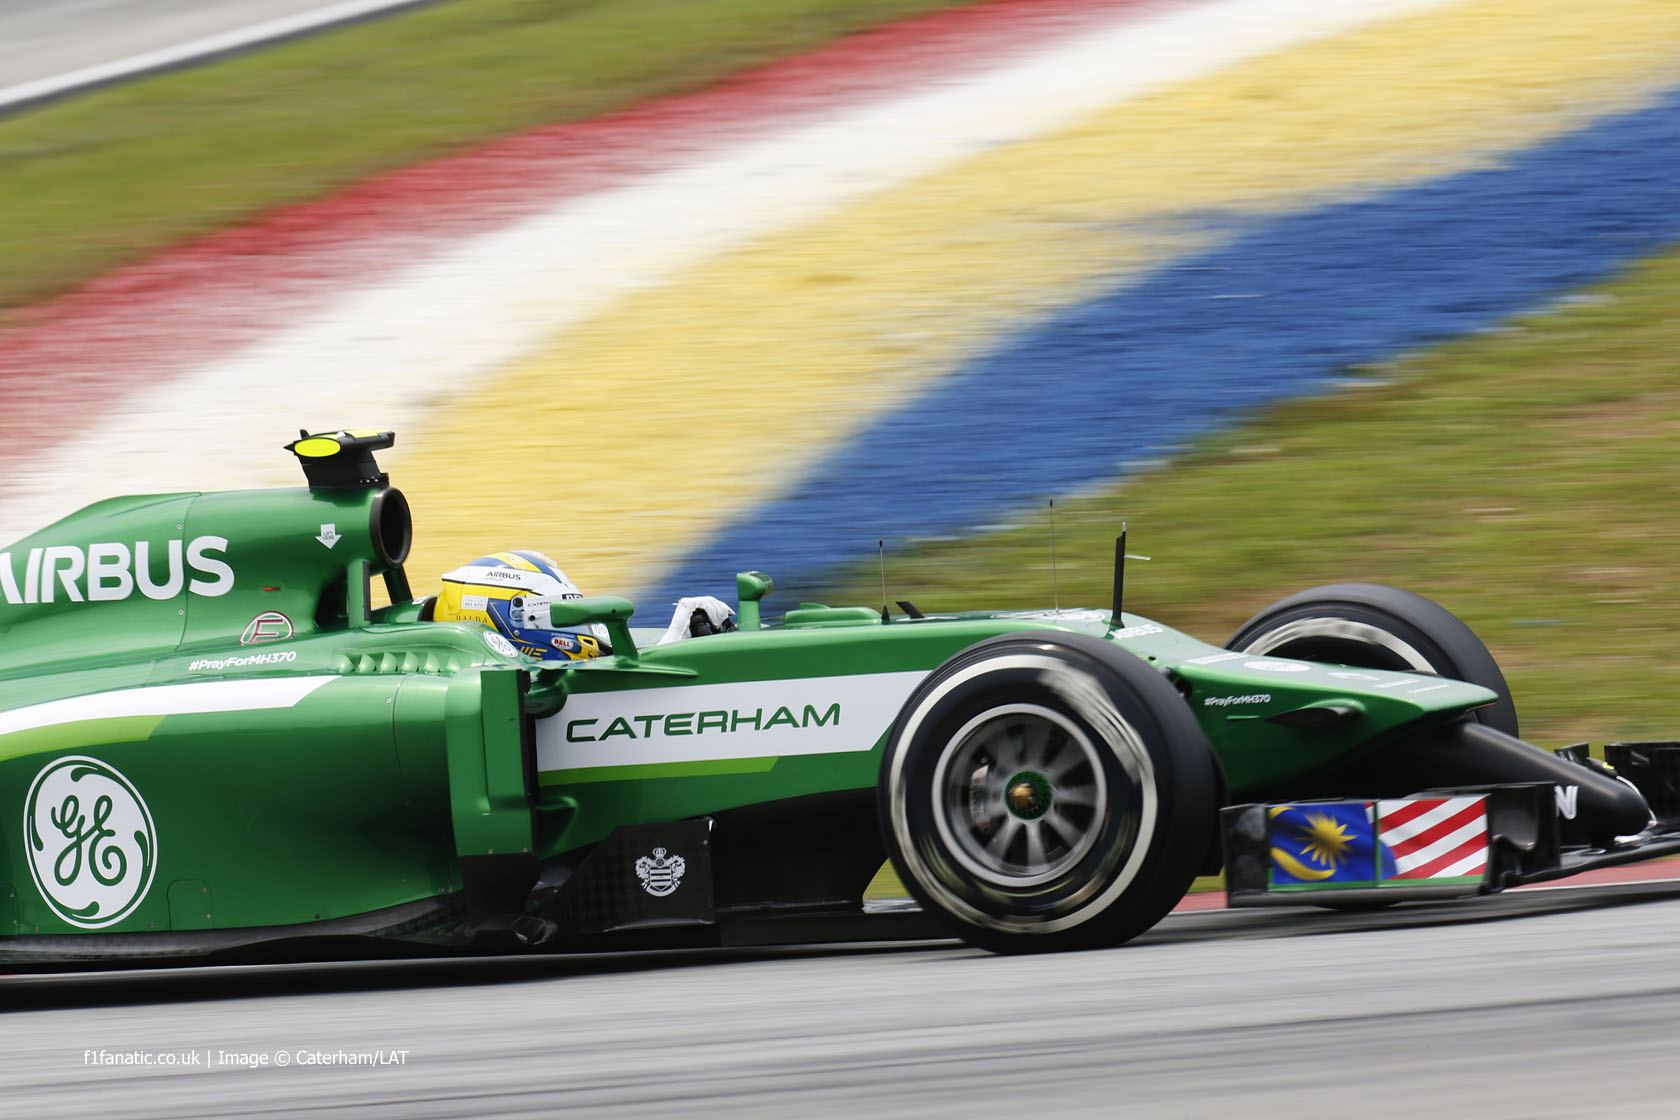 Marcus Ericsson, Caterham, Sepang International Circuit, 2014